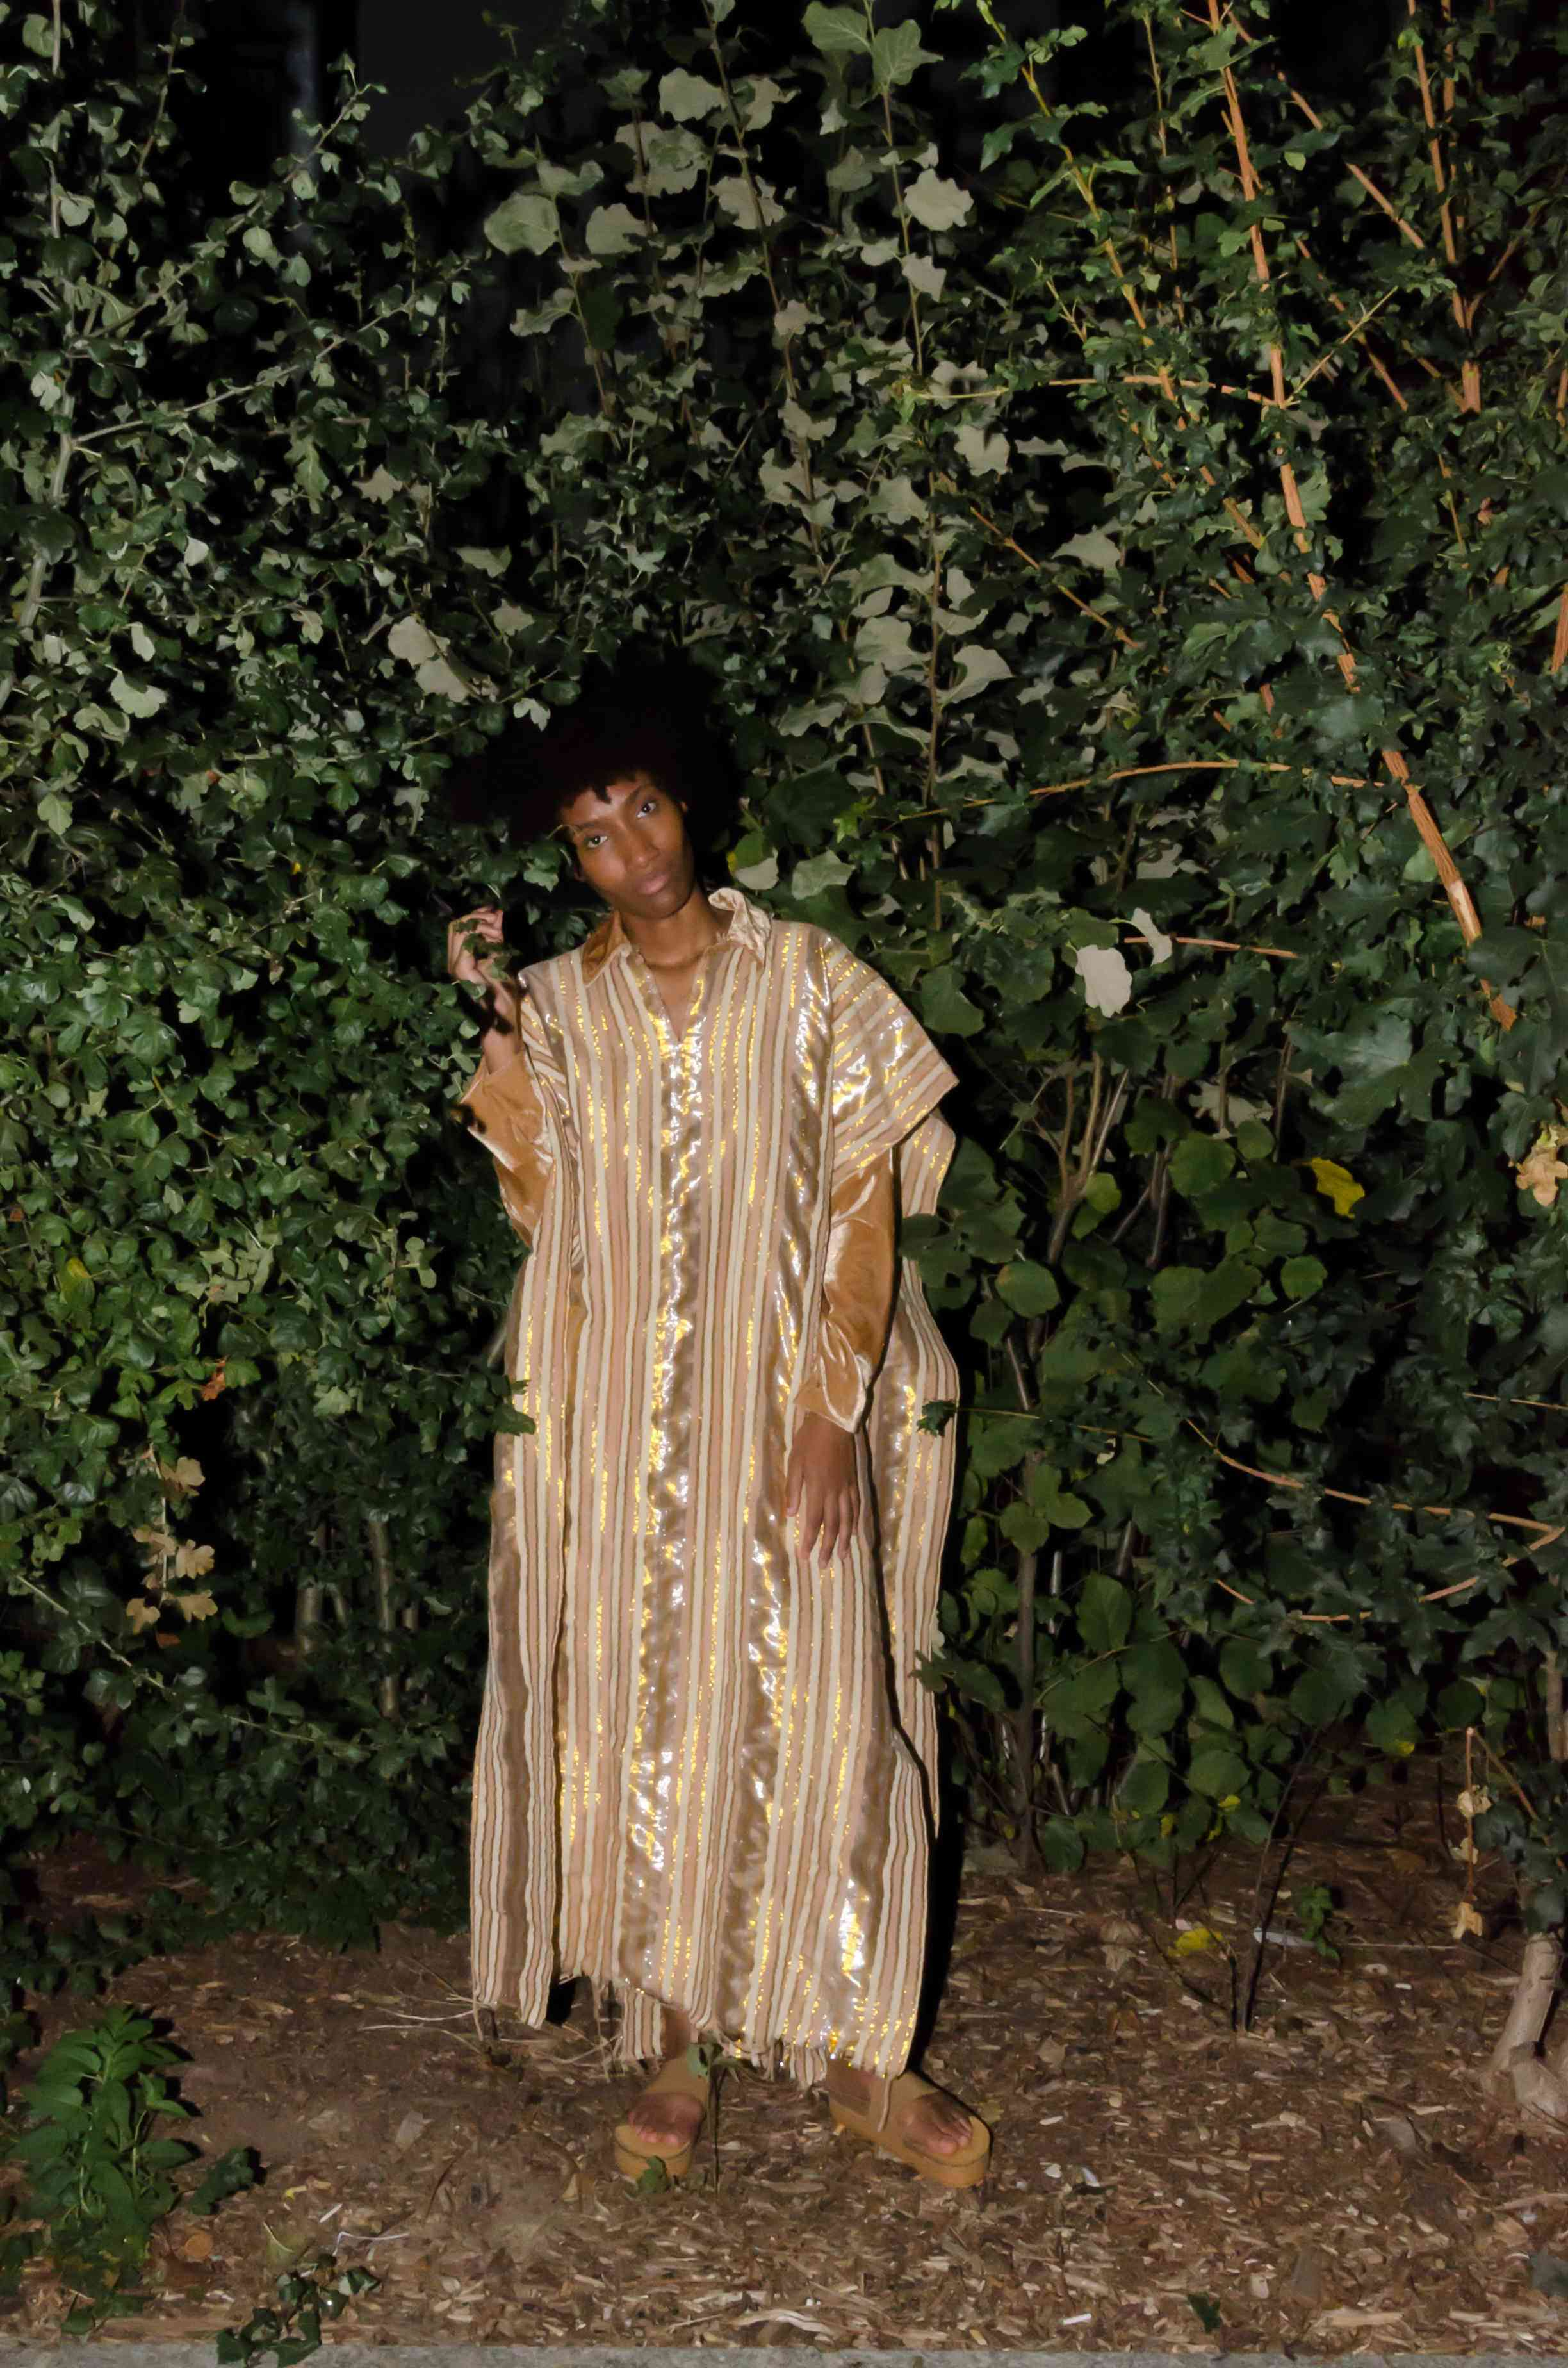 The Dahomey Amazons inspired IAMISIGO's Spring/Summer 2018 Collection